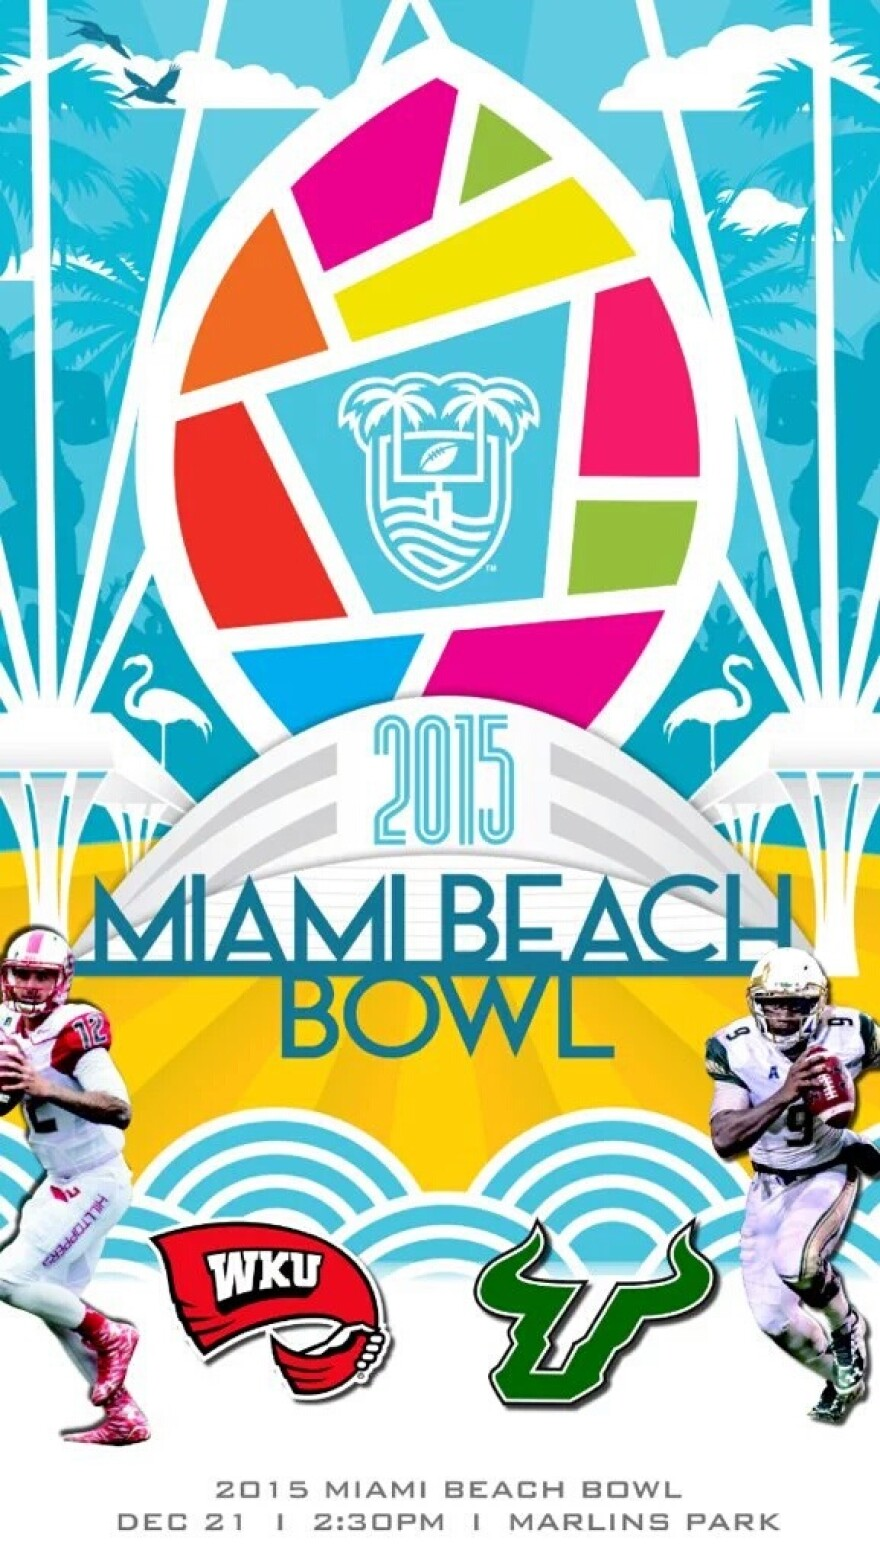 USF football will play Western Kentucky Univ. in the Miami Beach Bowl on Dec. 21.